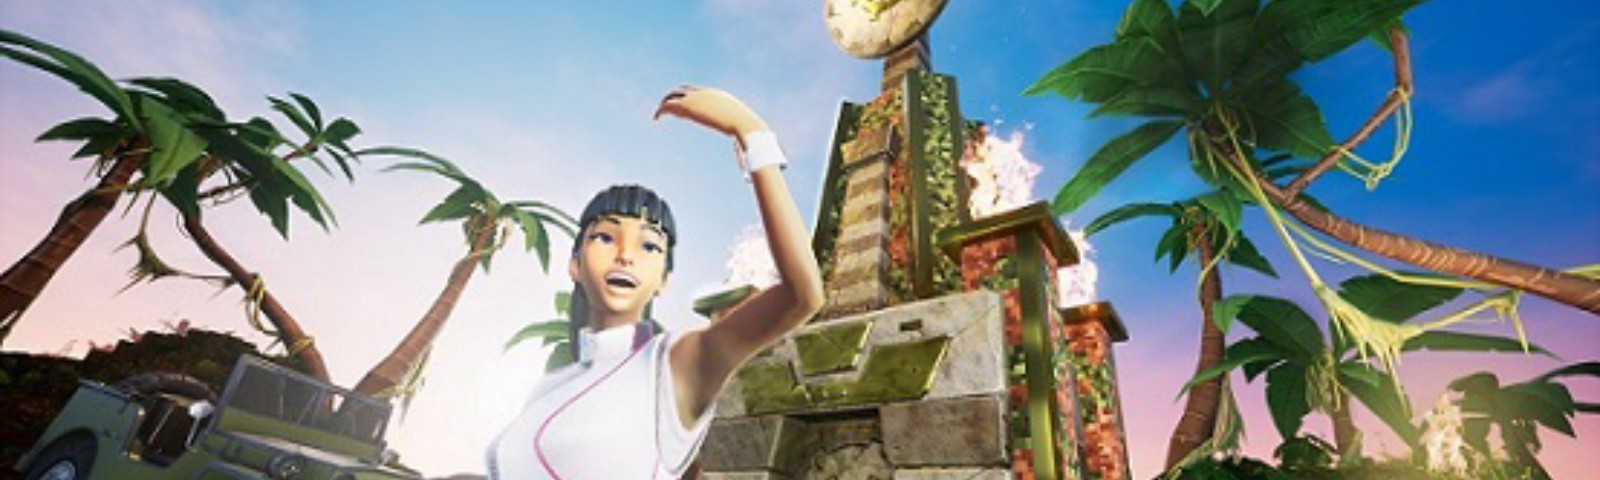 A screenshot from Crayta, showing a woman in a jungle landscape gesturing for you to come towards her.